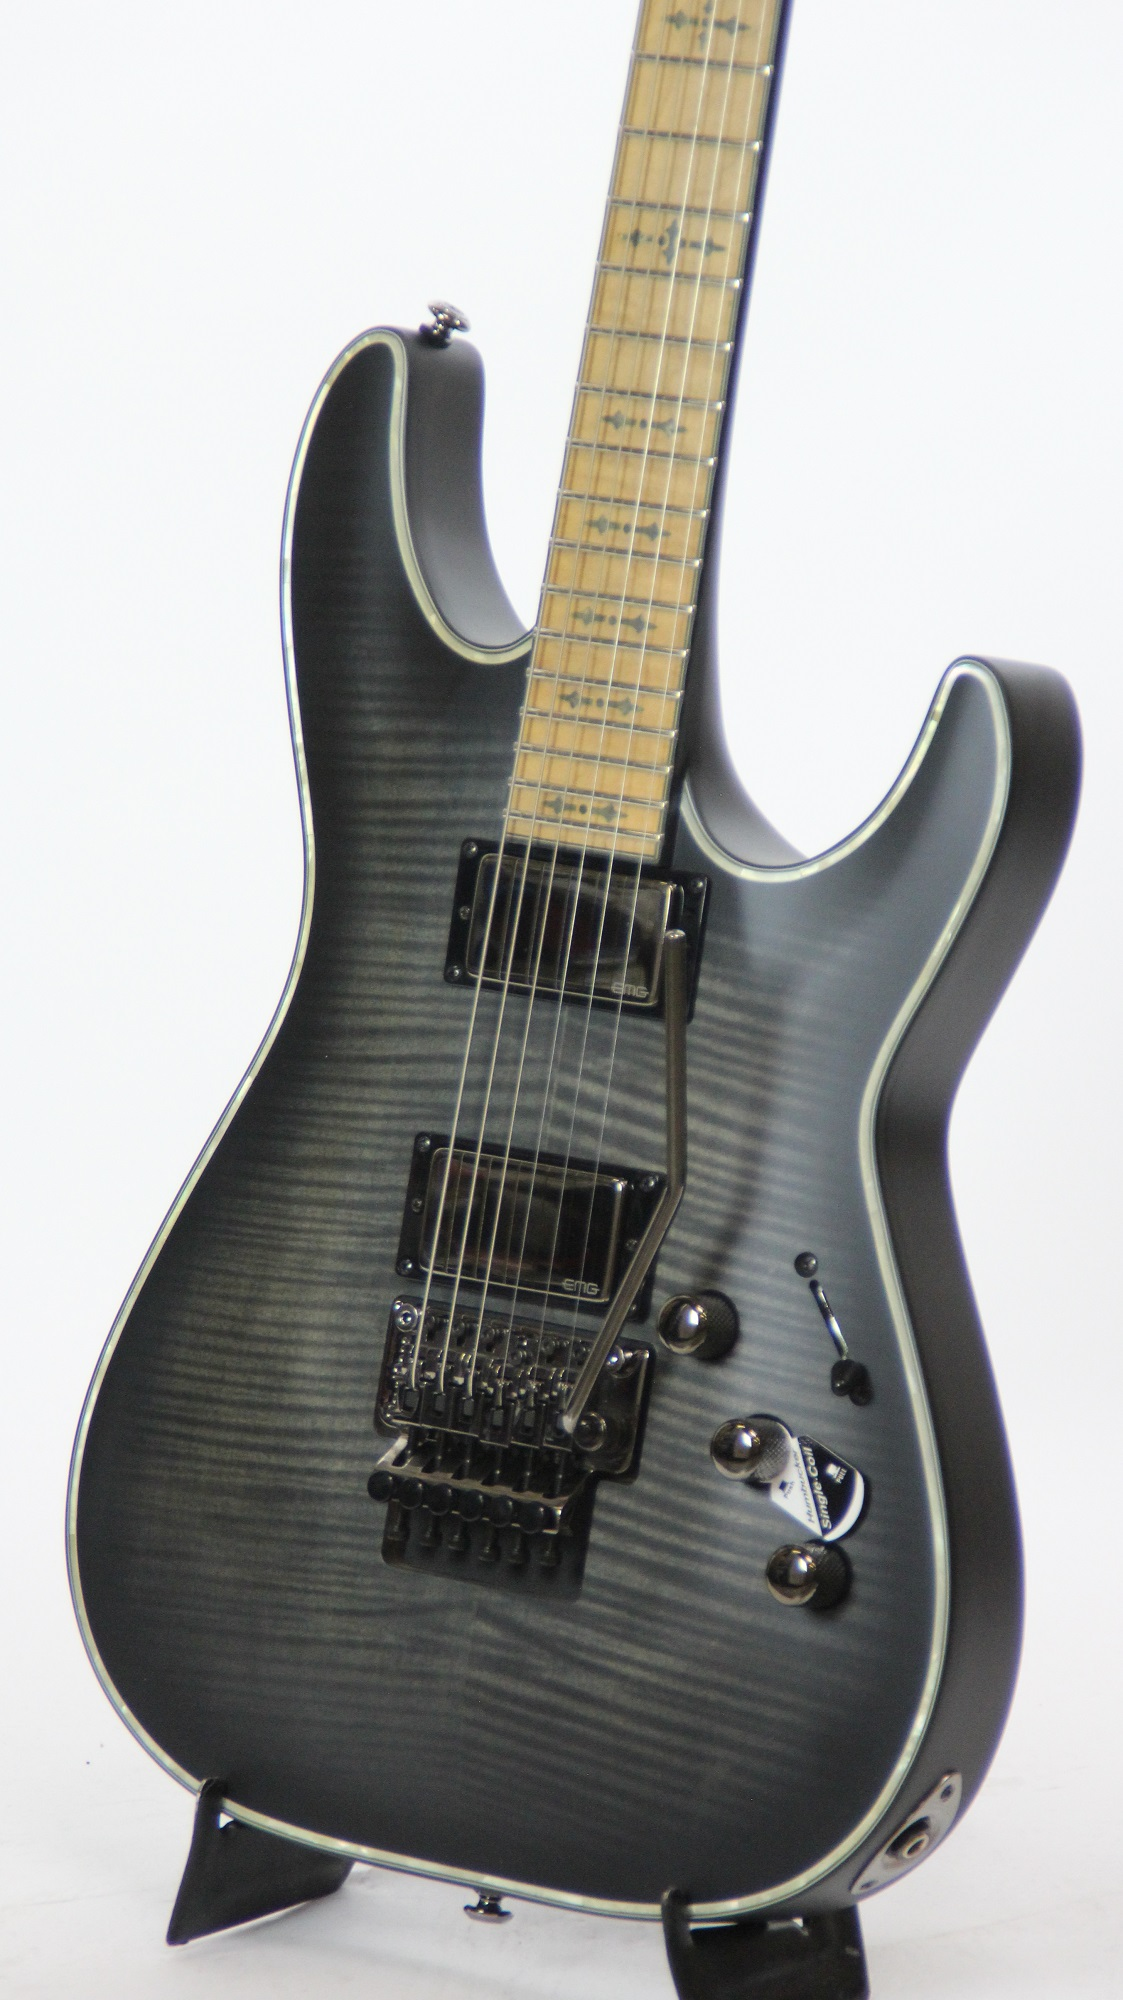 schecter hellraiser extreme c 1 fr m see thru black satin 1872 electric guitar 839212007251 ebay. Black Bedroom Furniture Sets. Home Design Ideas